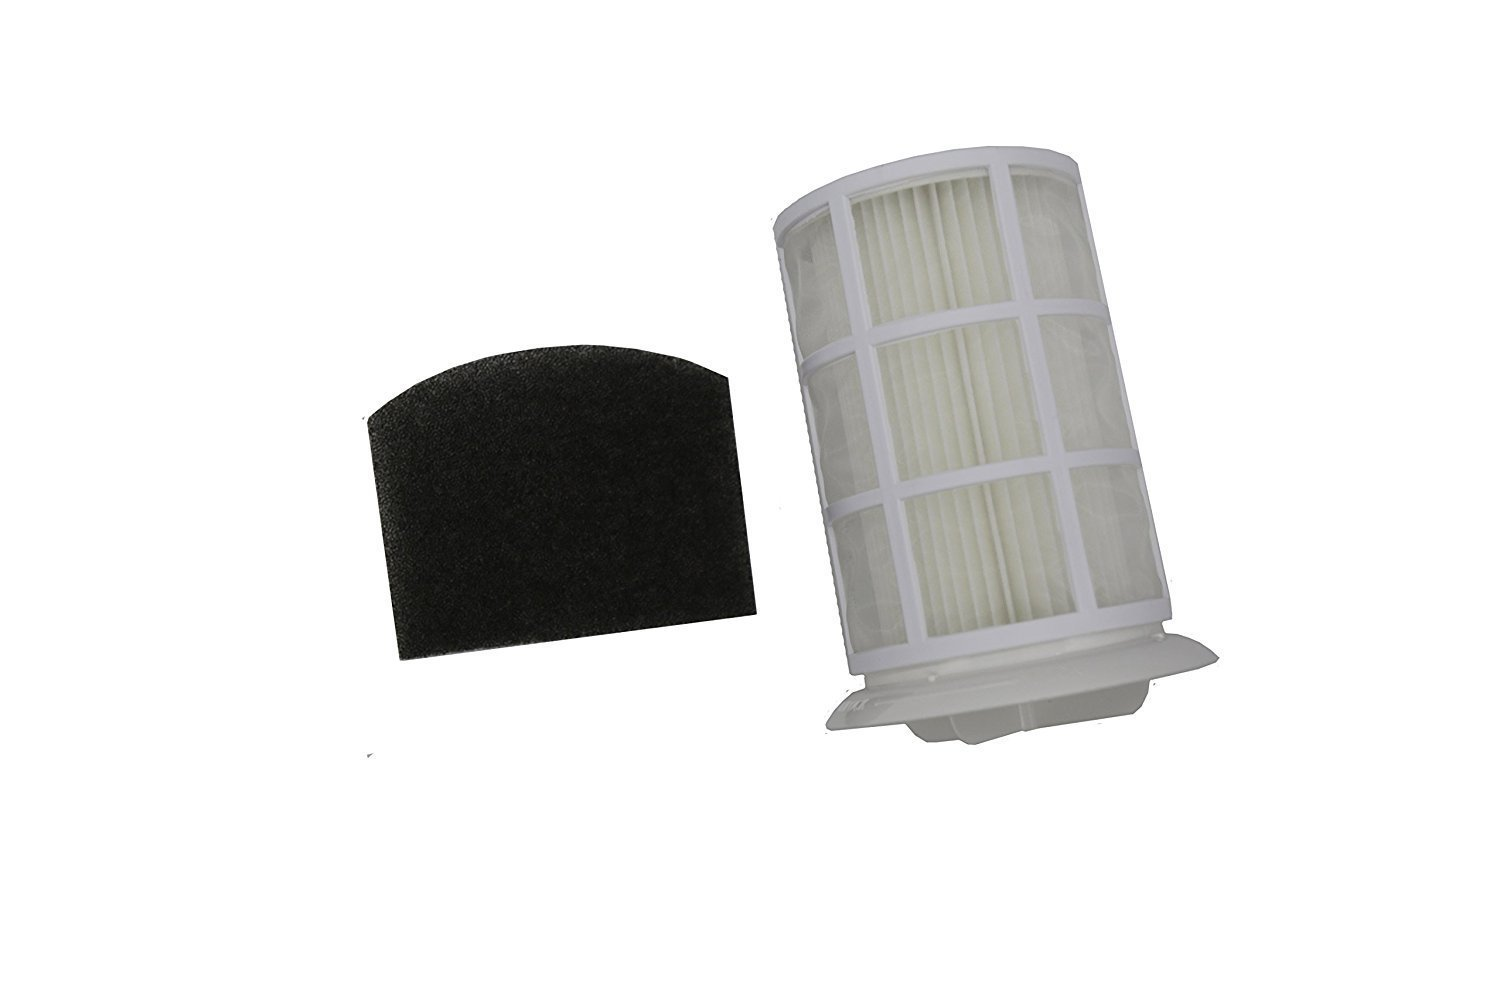 Green Label Replacement Pre Motor and Exhaust Filter Kit for Hoover TH71BL01001 (39100440) Blaze Bagless Upright Vacuum Cleaners (compares to Type U71, 35601420)